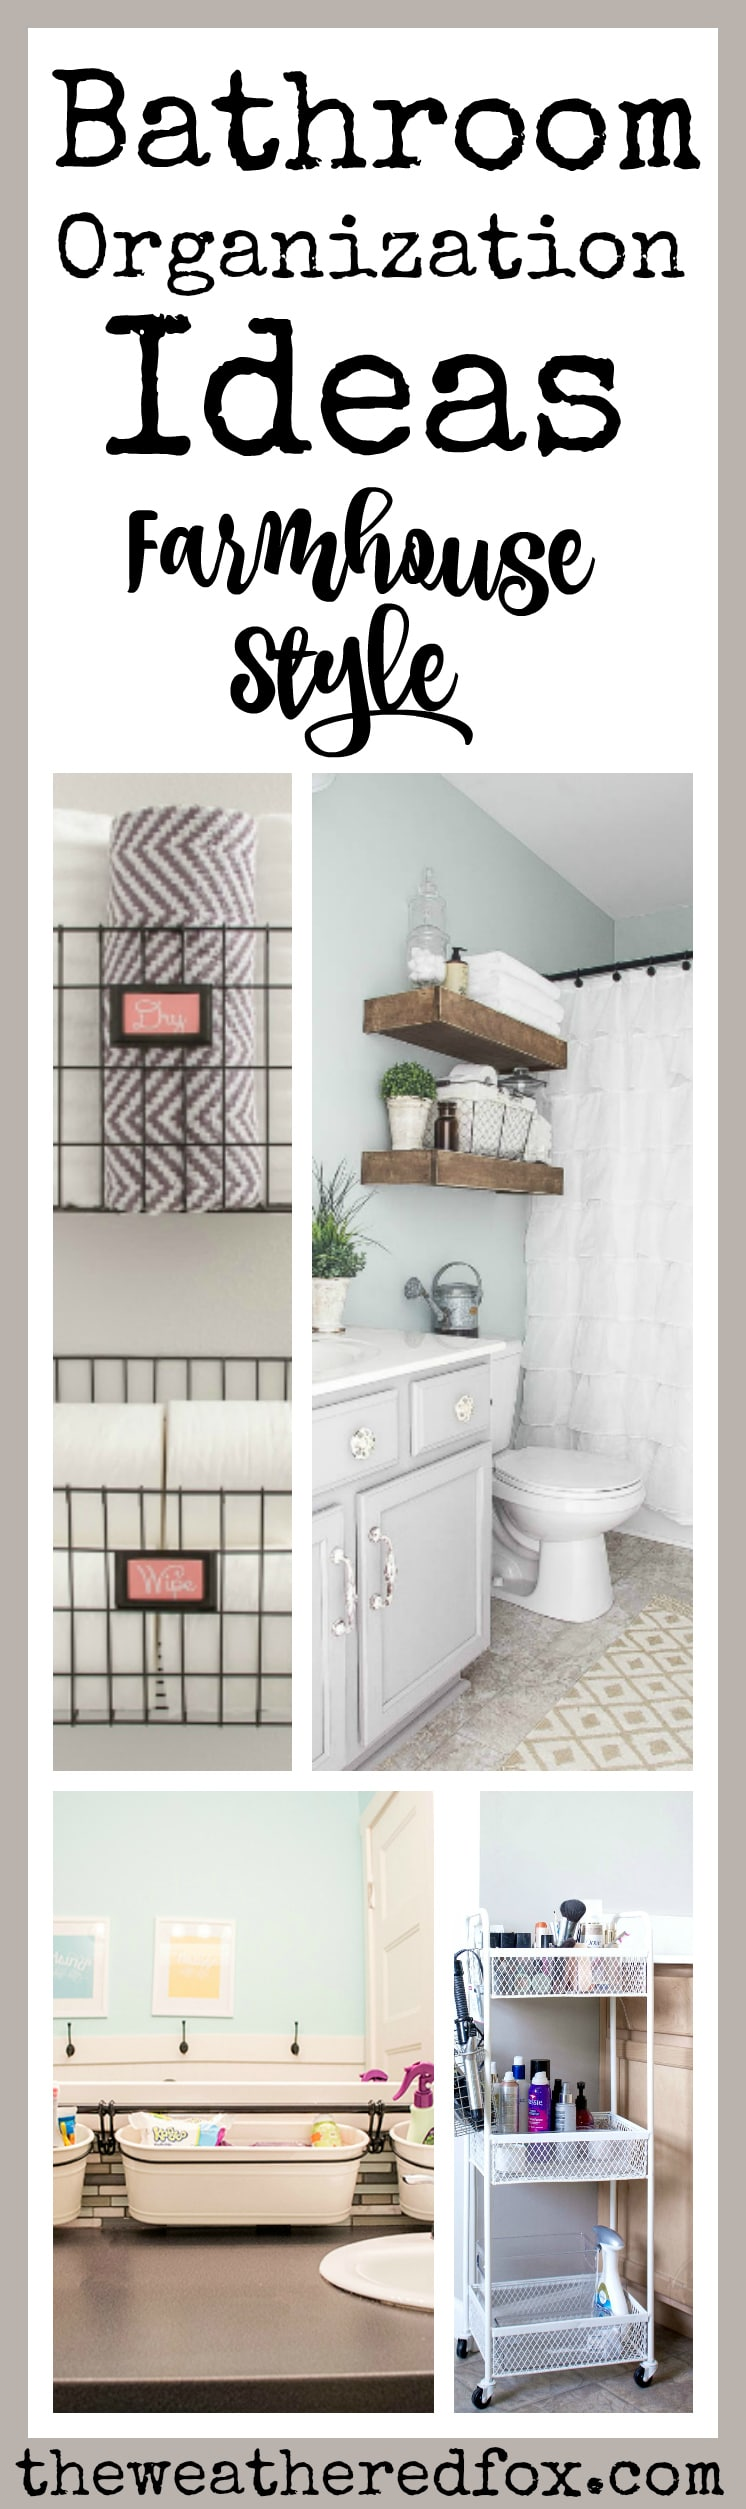 Bathroom Organization Ideas The Weathered Fox